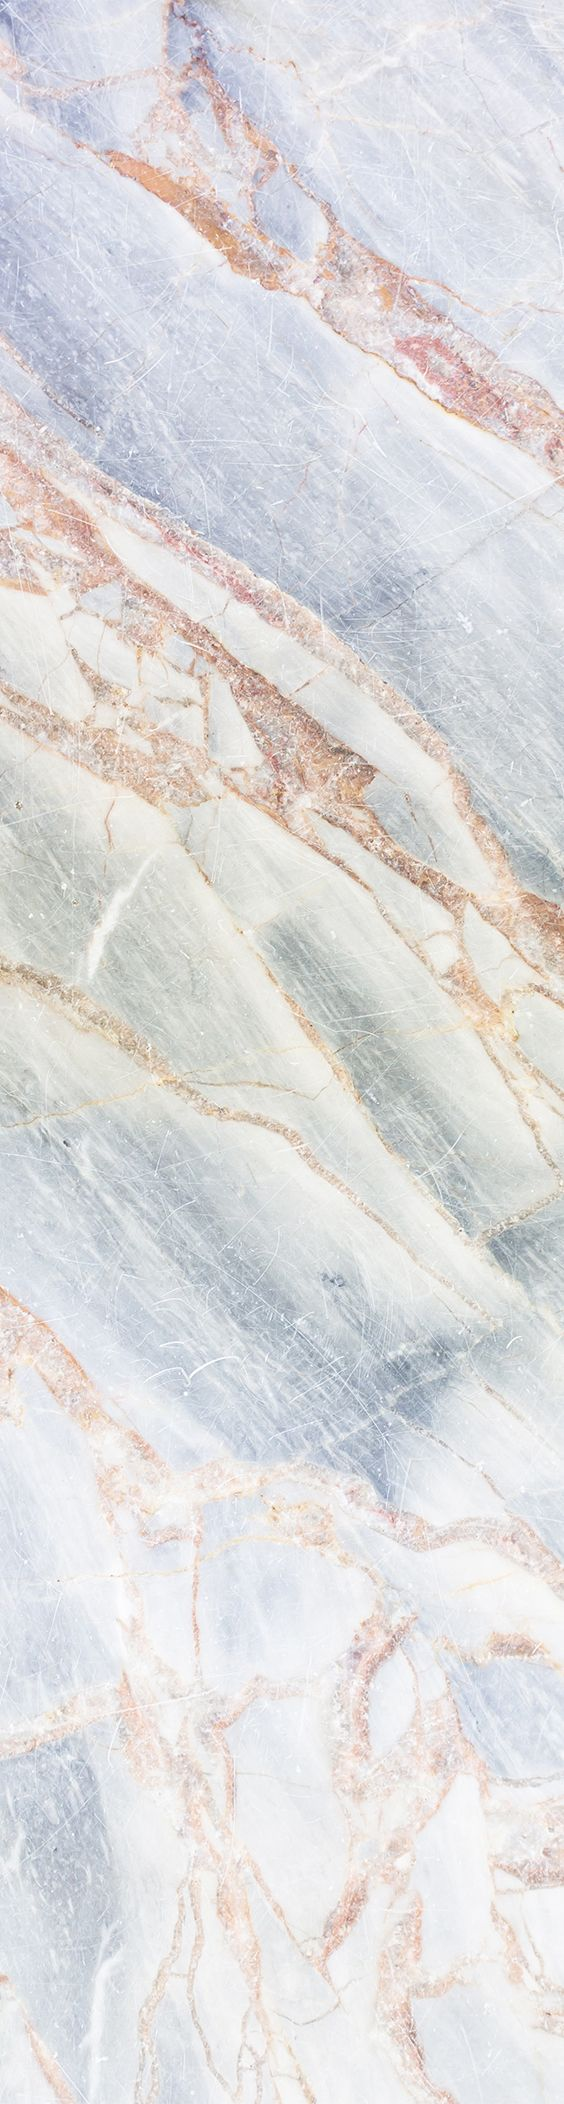 Bronze Cracked Marble Wallpaper Marble Iphone Wallpaper Blue Marble Wallpaper Marble Wallpaper Phone